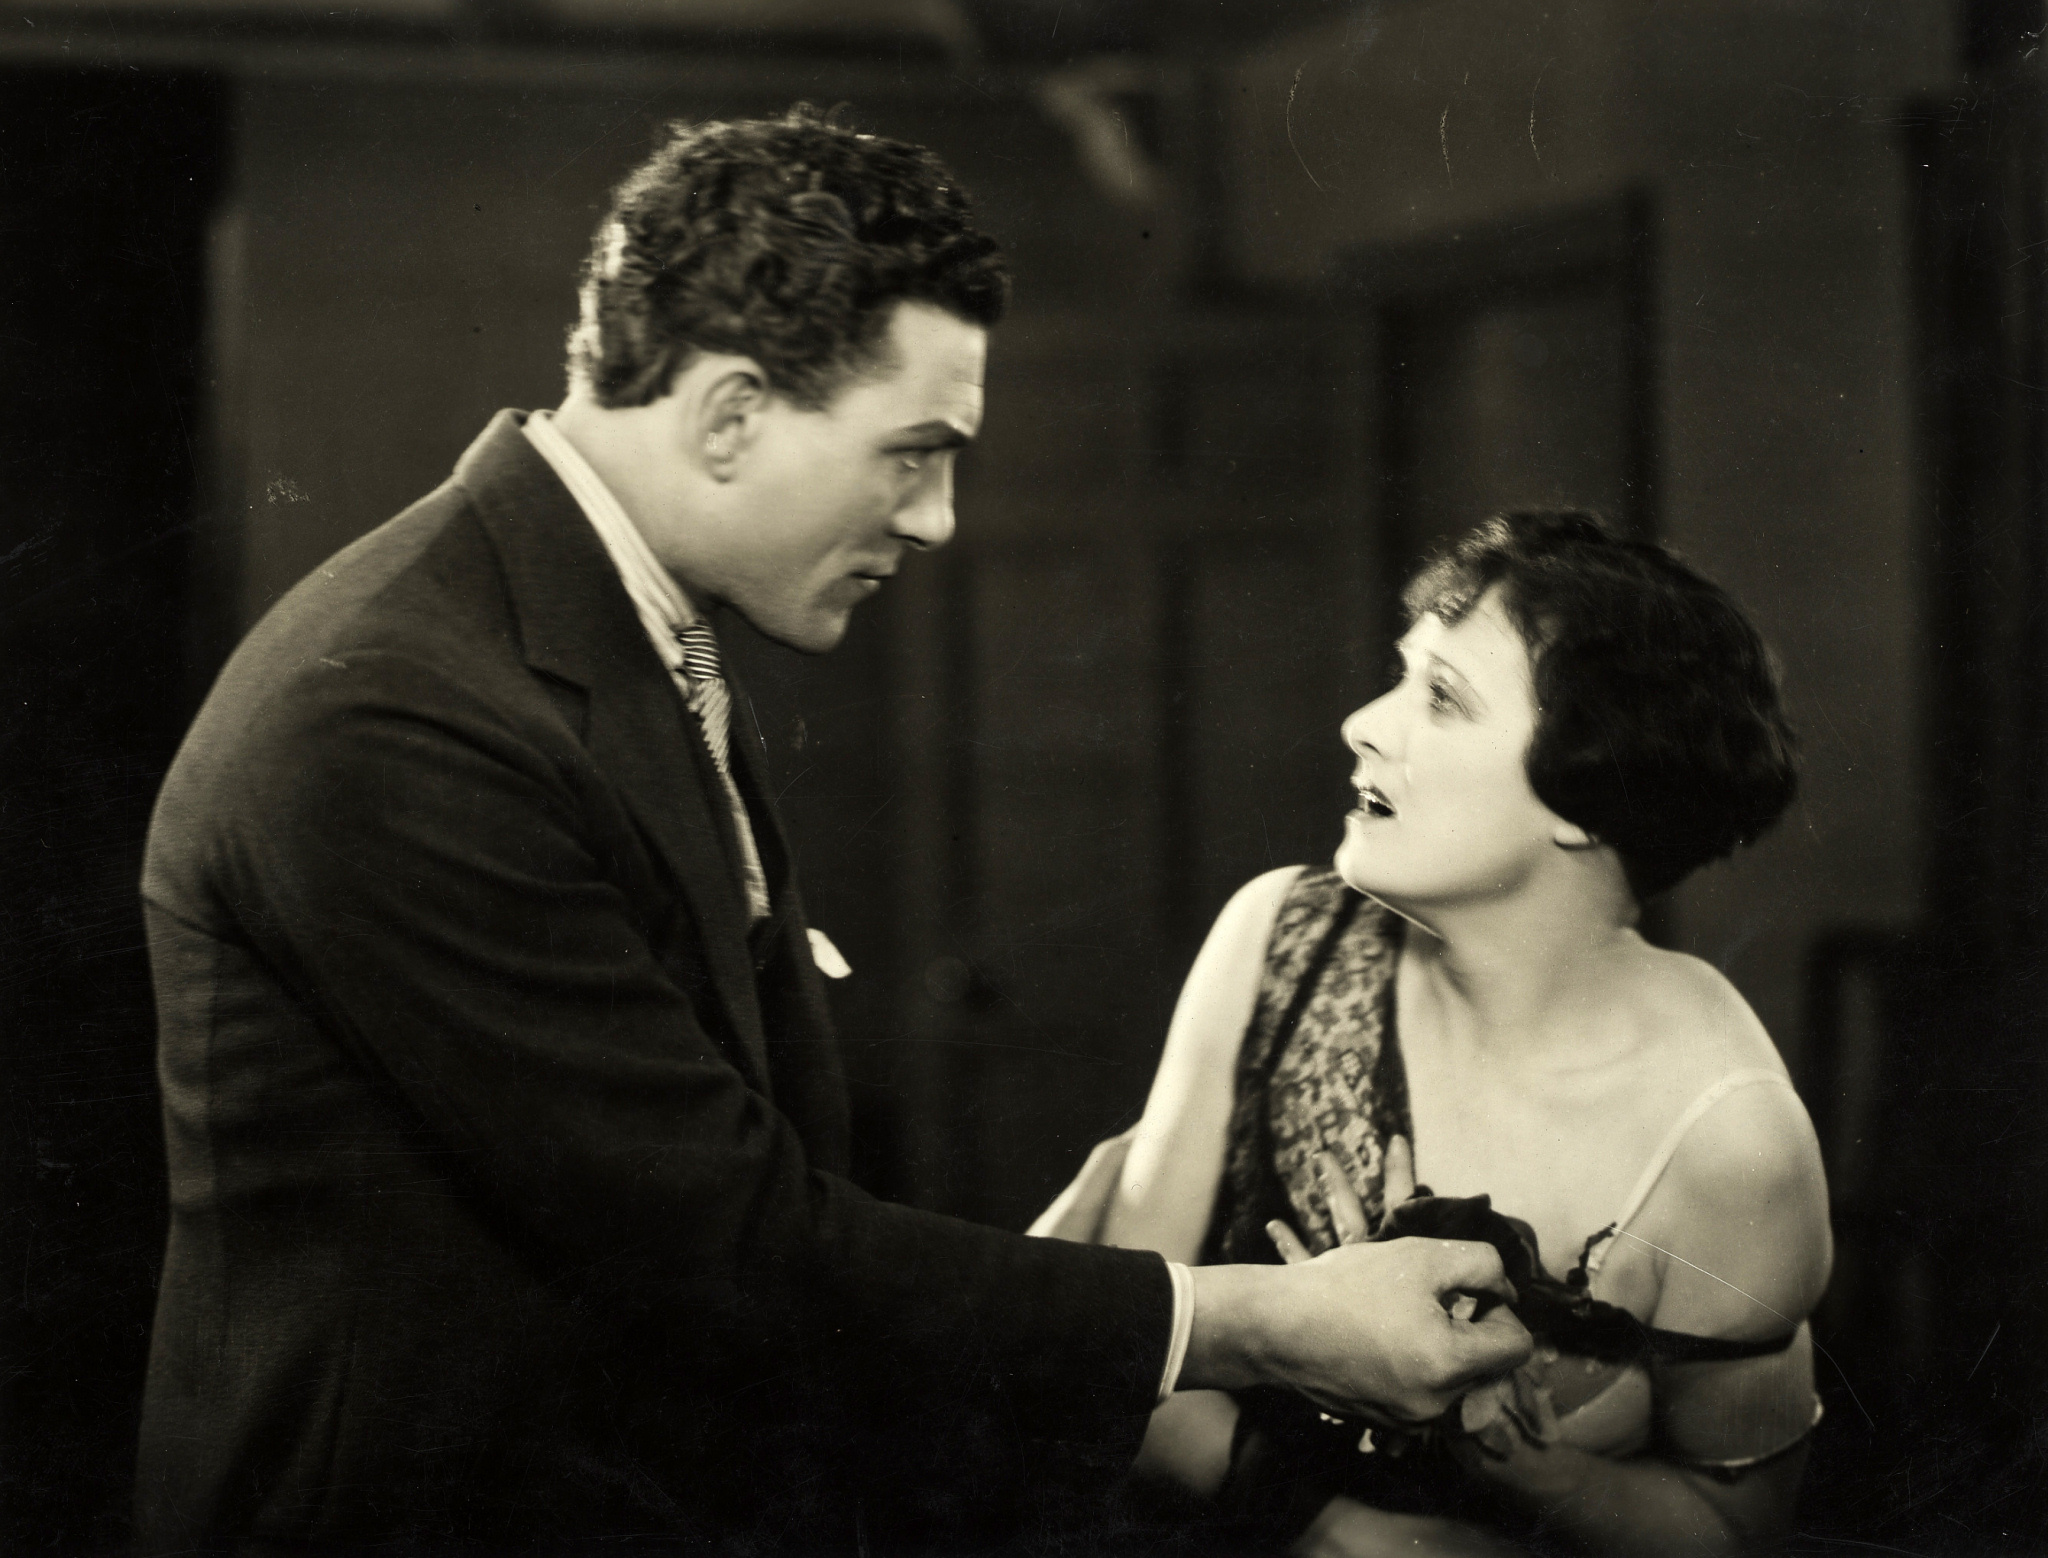 Carl Brisson and Lillian Hall-Davis in The Ring (1927, dir. Alfred Hitchcock)